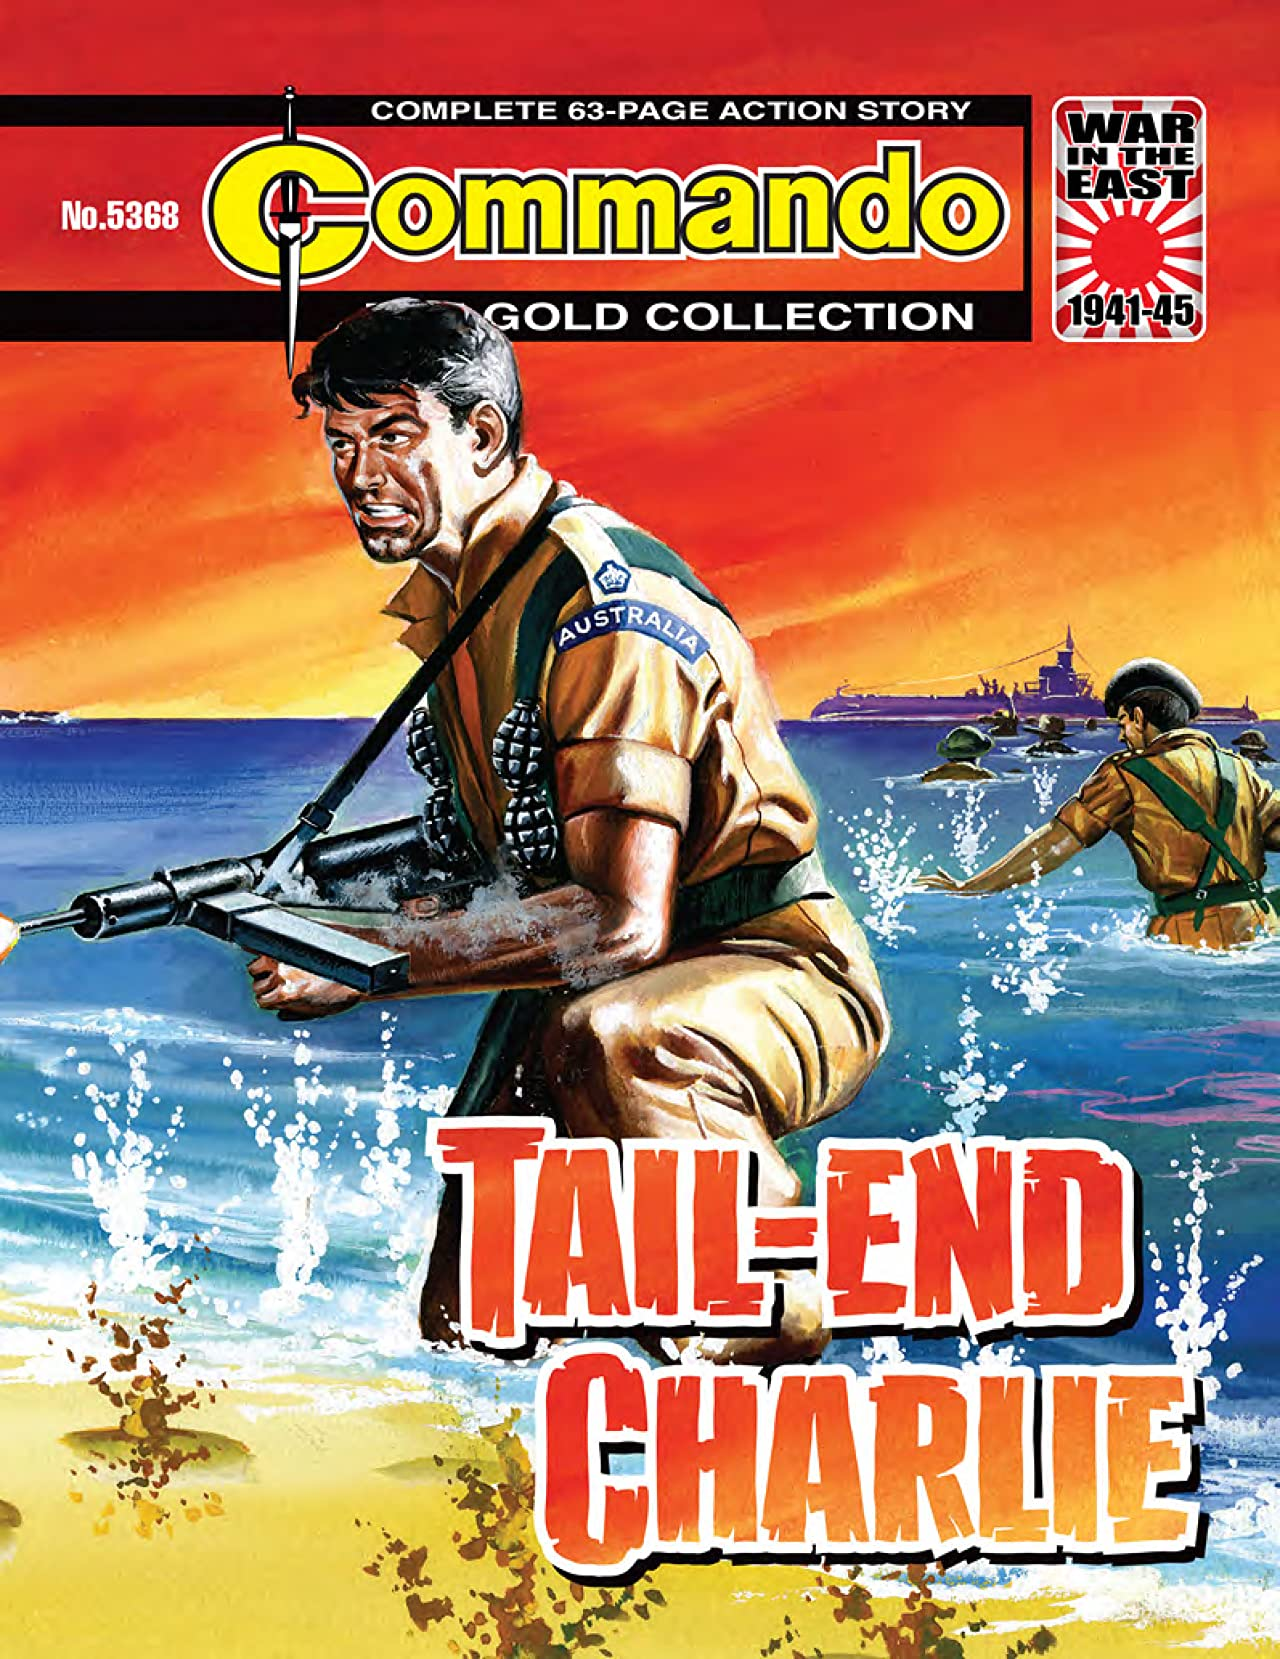 Commando #5368: Tail-End Charlie